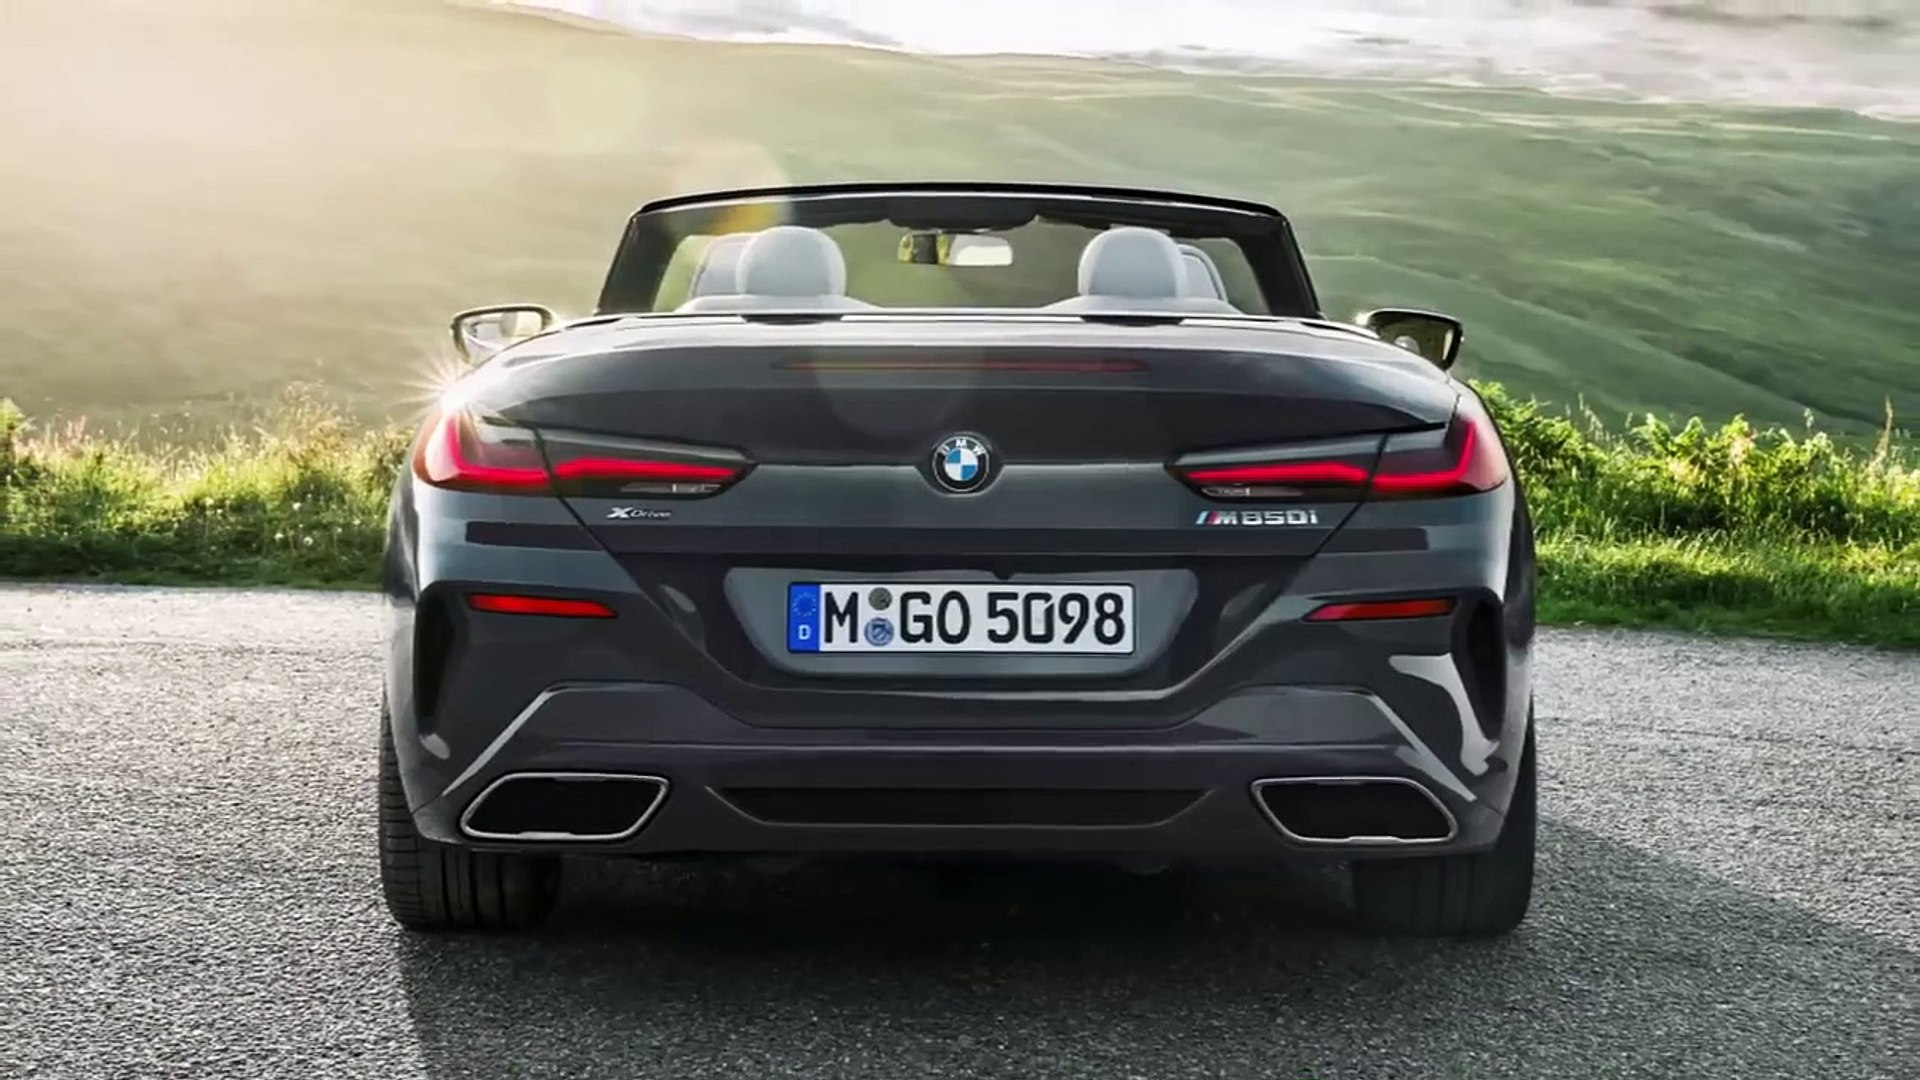 2019 Bmw 8 Series Convertible Interior Exterior Video Dailymotion